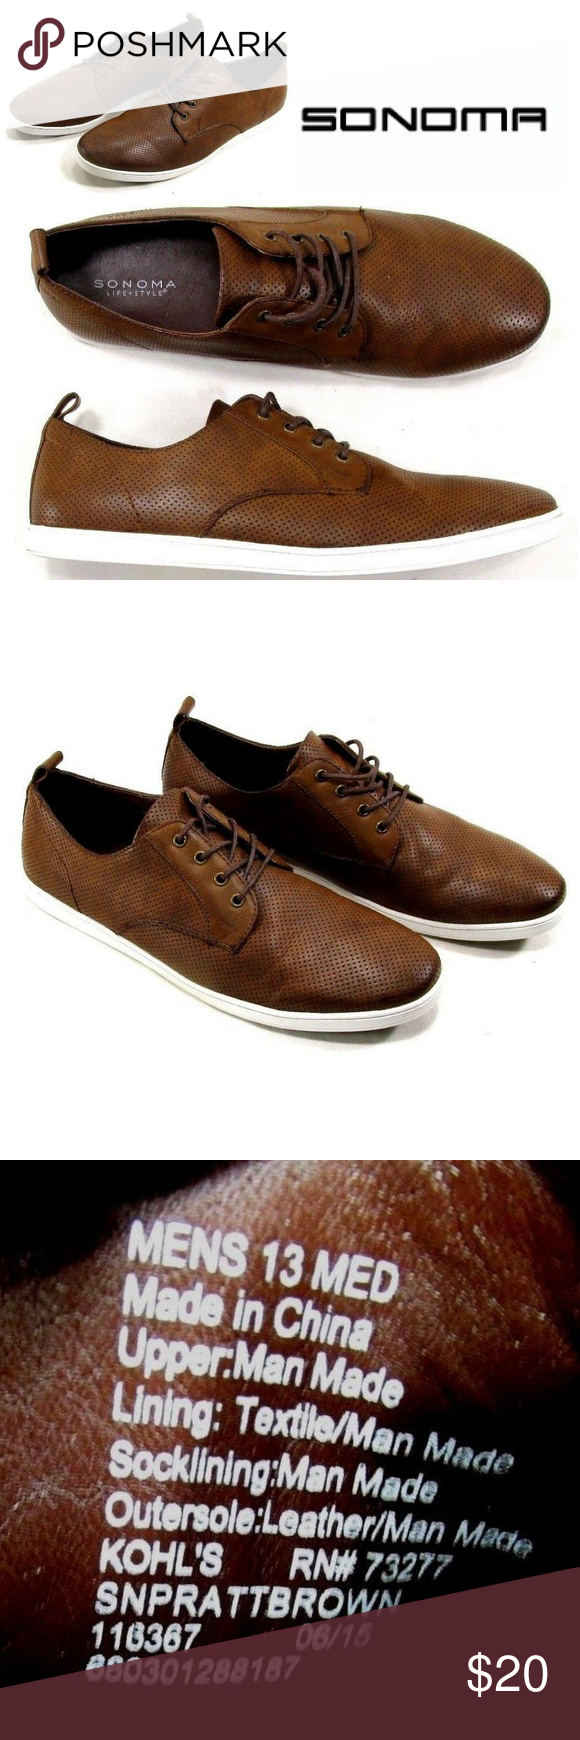 Kohls Brown White Casual Shoes #S2